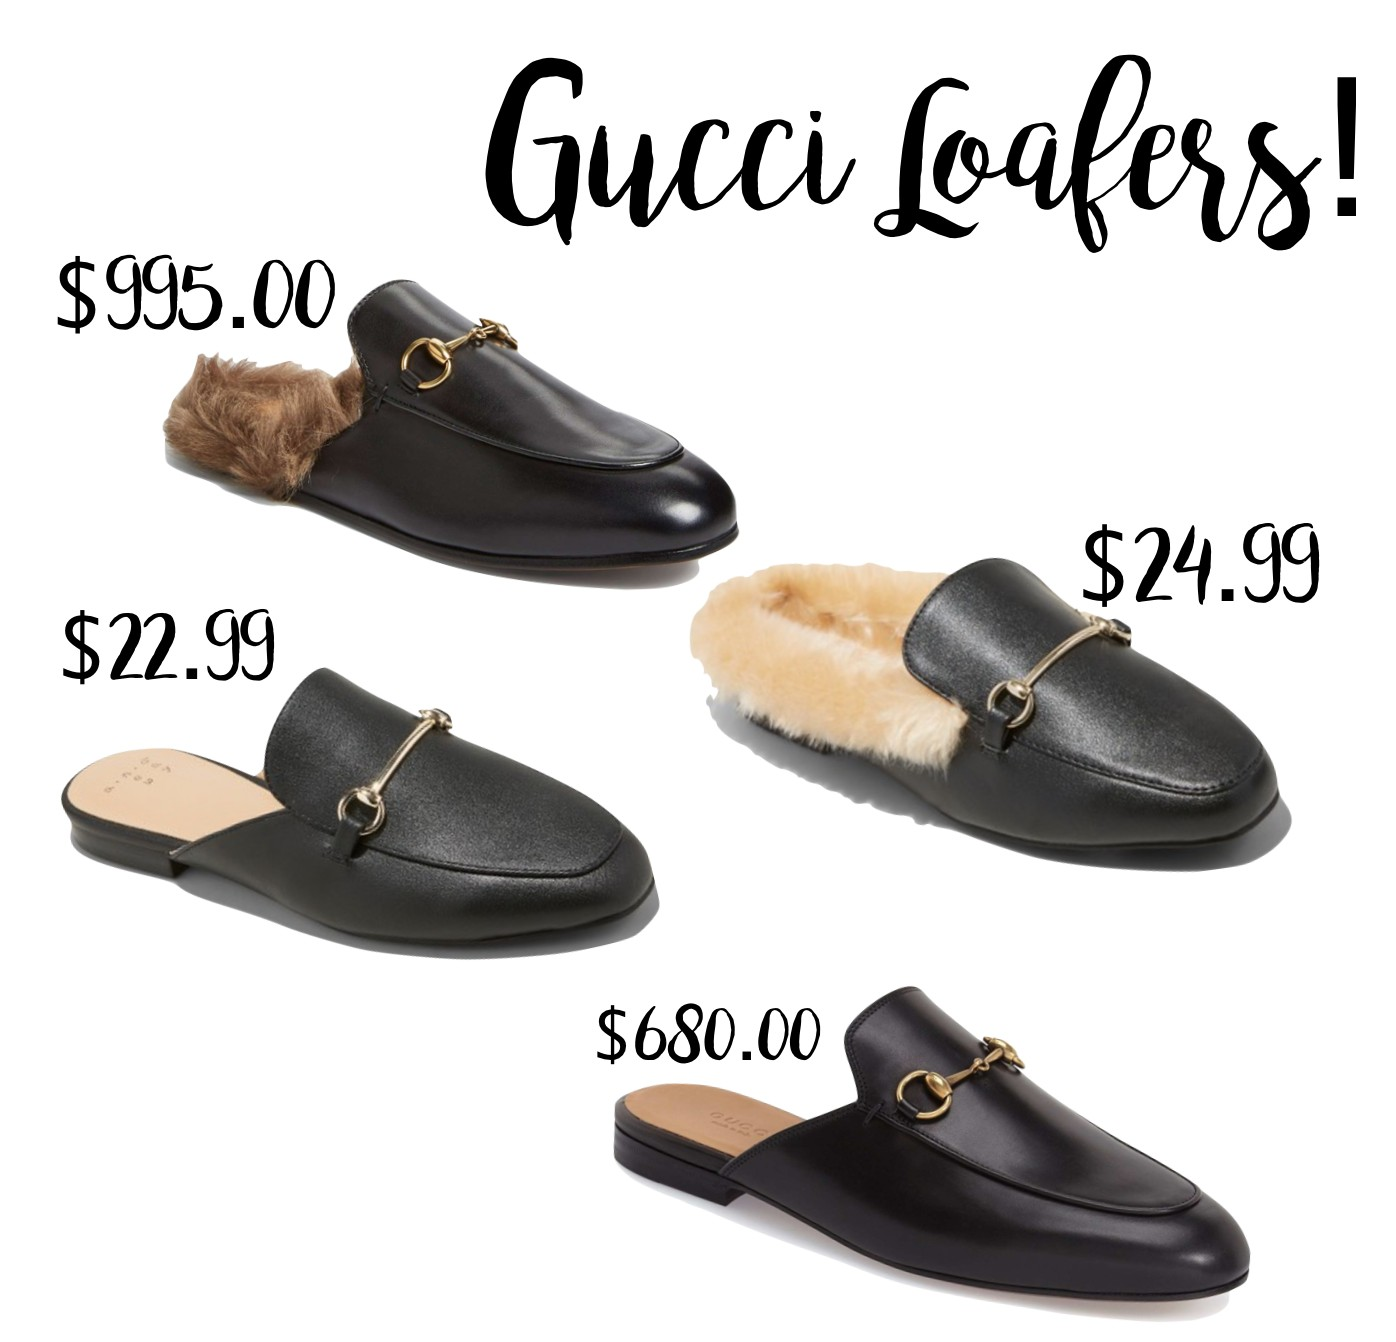 878c0c8ea3c7 Sunday Steals  Gucci Loafer Dupes! – abigailsays